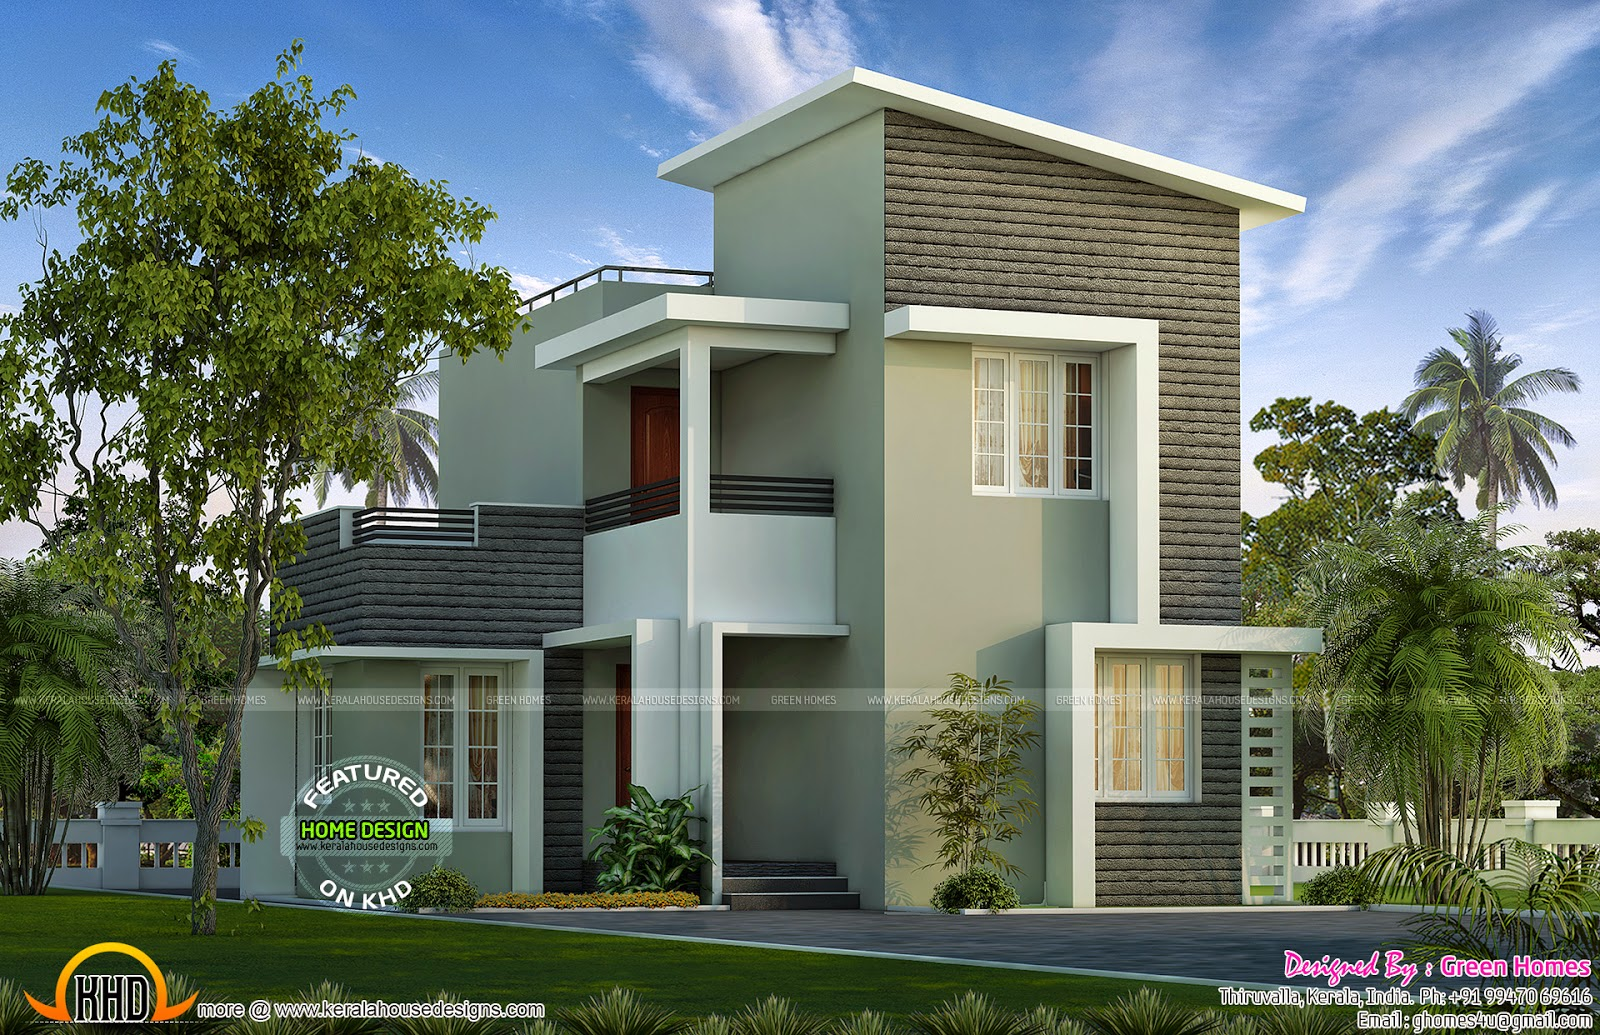 Small plot double storied house kerala home design and for House model design photos